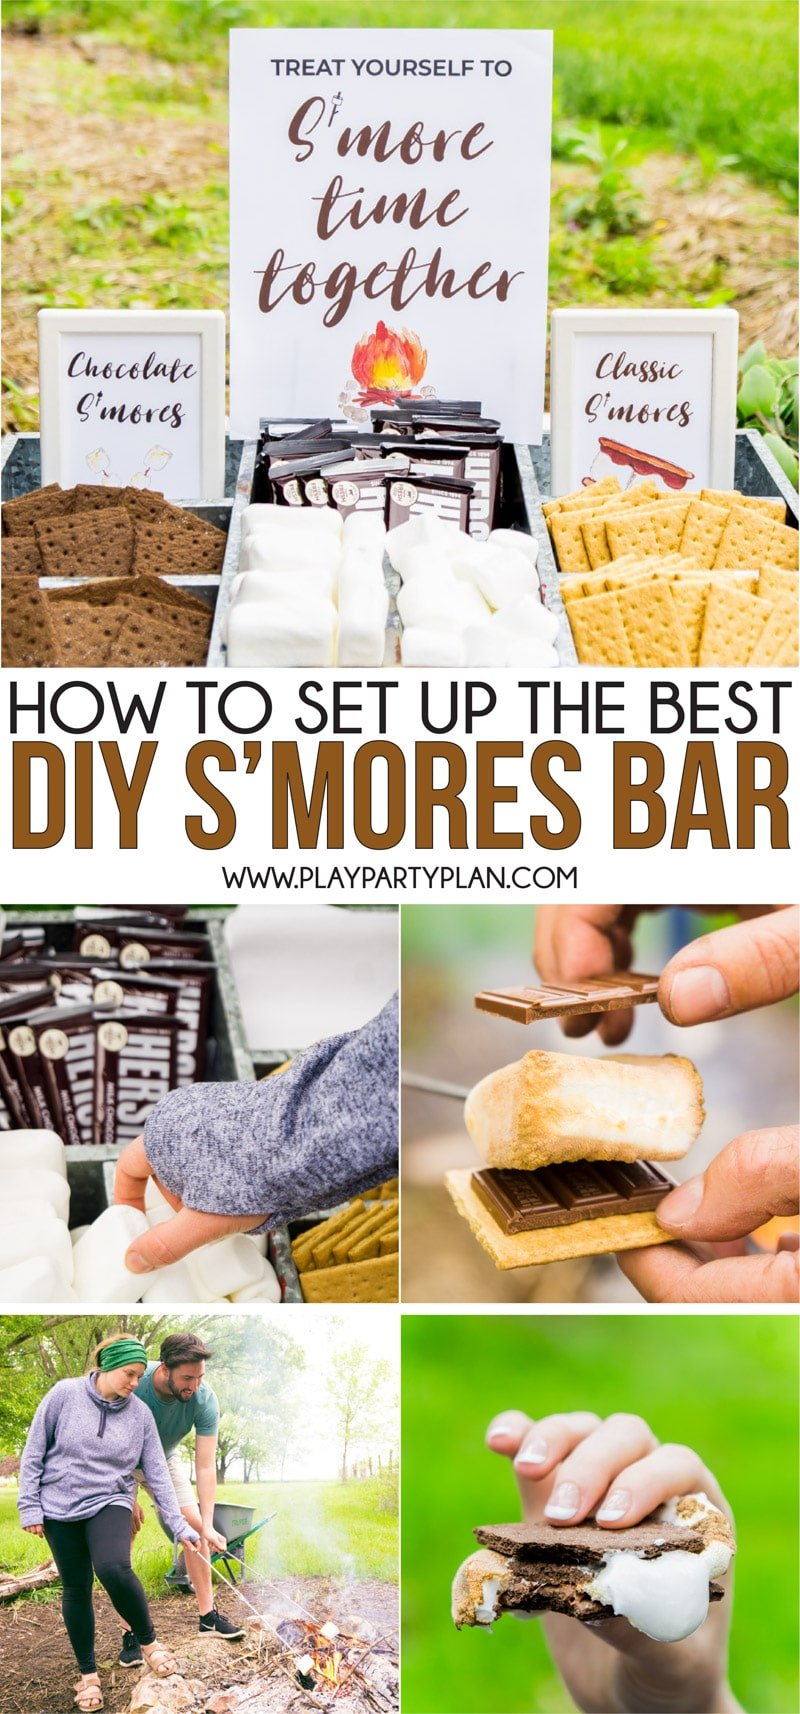 Great ideas for creating a DIY s'mores bar for a party, wedding, or just a night with friends! Tips on how to build your s'mores dessert bar and for setting it up either indoor or outdoor! And bonus - a free printable sign you can use for a menu!